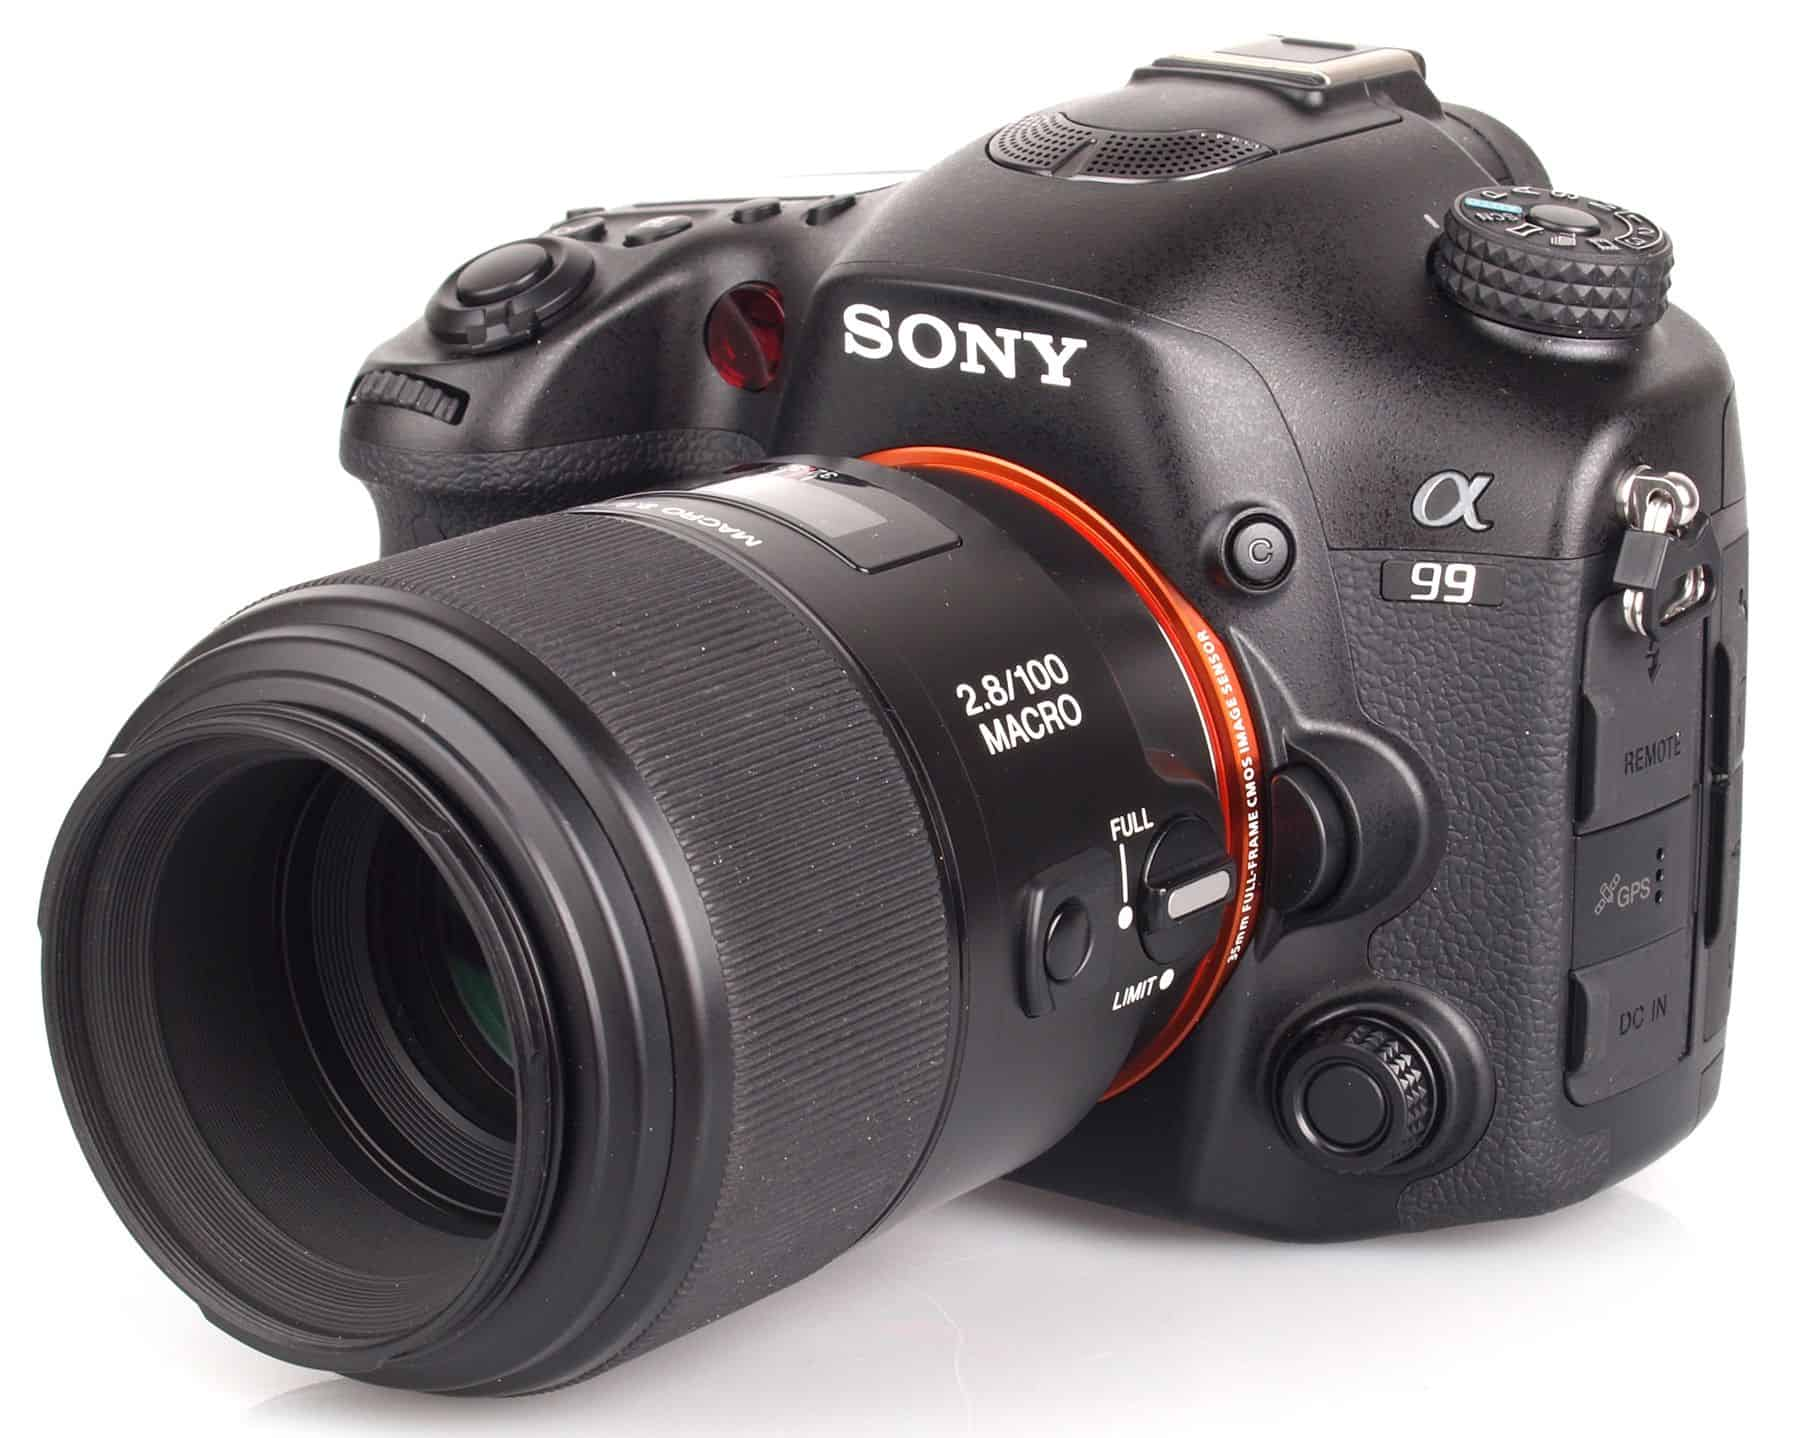 amazon Sony A99 II reviews Sony A99 II on amazon newest Sony A99 II prices of Sony A99 II Sony A99 II deals best deals on Sony A99 II buying a Sony A99 II lastest Sony A99 II what is a Sony A99 II Sony A99 II at amazon where to buy Sony A99 II where can i you get a Sony A99 II online purchase Sony A99 II Sony A99 II sale off Sony A99 II discount cheapest Sony A99 II Sony A99 II for sale Sony A99 II products Sony A99 II tutorial Sony A99 II specification Sony A99 II features Sony A99 II test Sony A99 II series Sony A99 II service manual Sony A99 II instructions Sony A99 II accessories